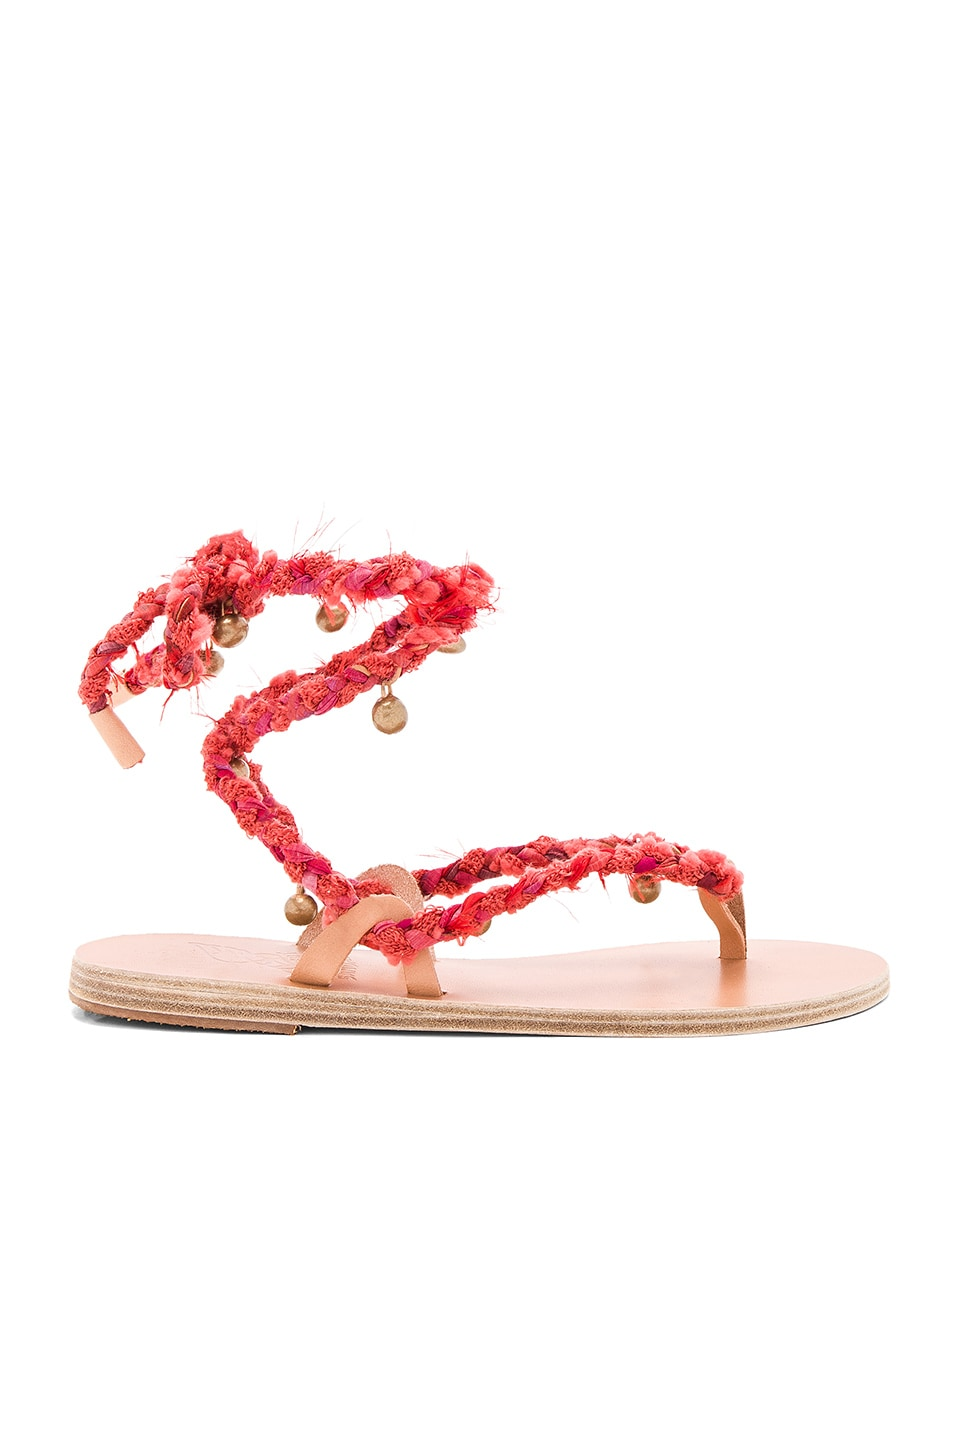 Atropos Sandal by Ancient Greek Sandals